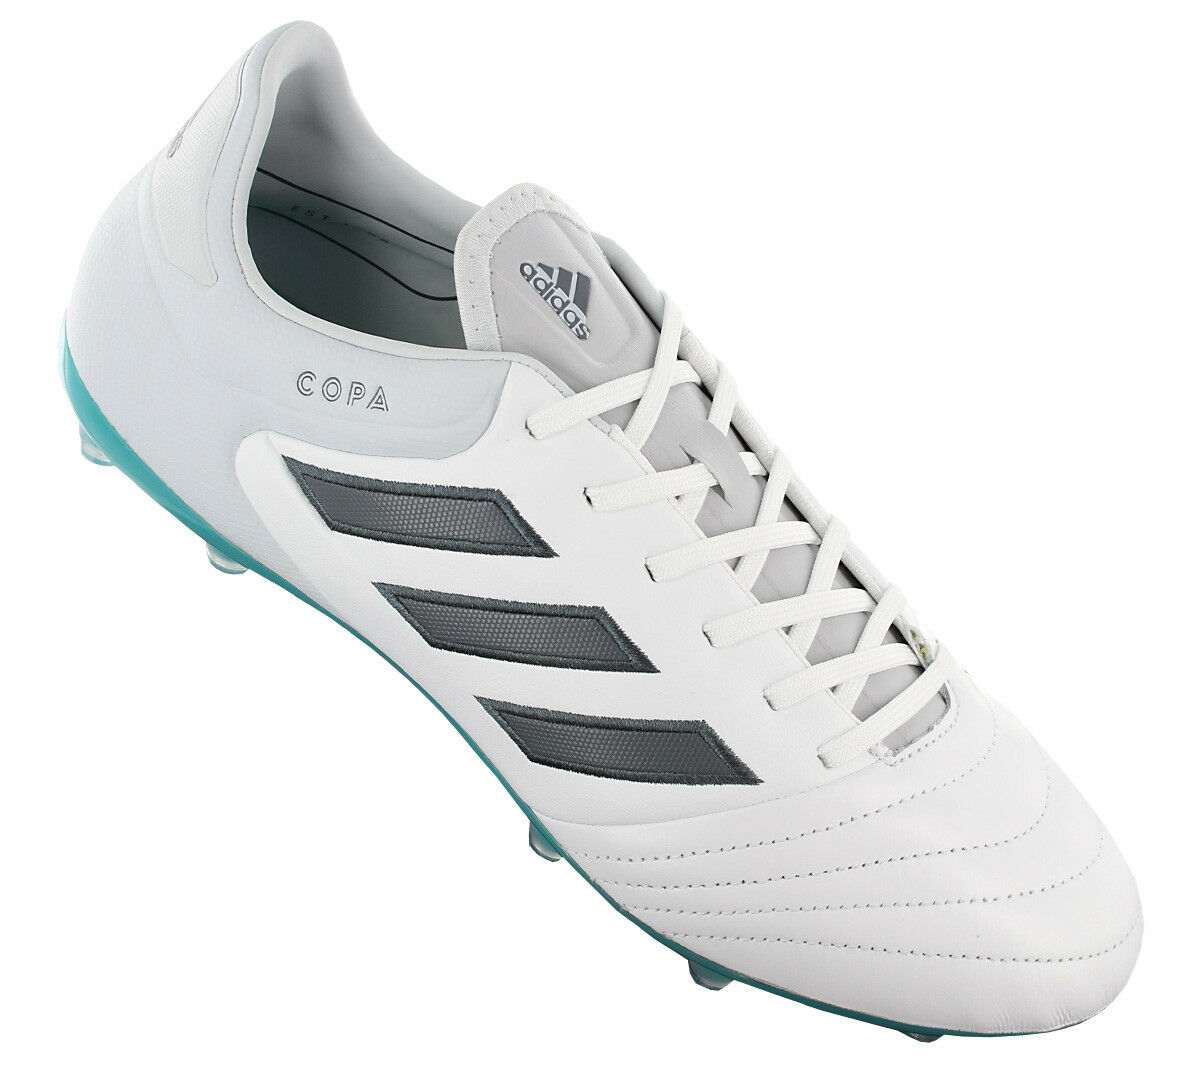 NEW adidas Copa 17.2 FG S77135 Men''s shoes Trainers Sneakers SALE